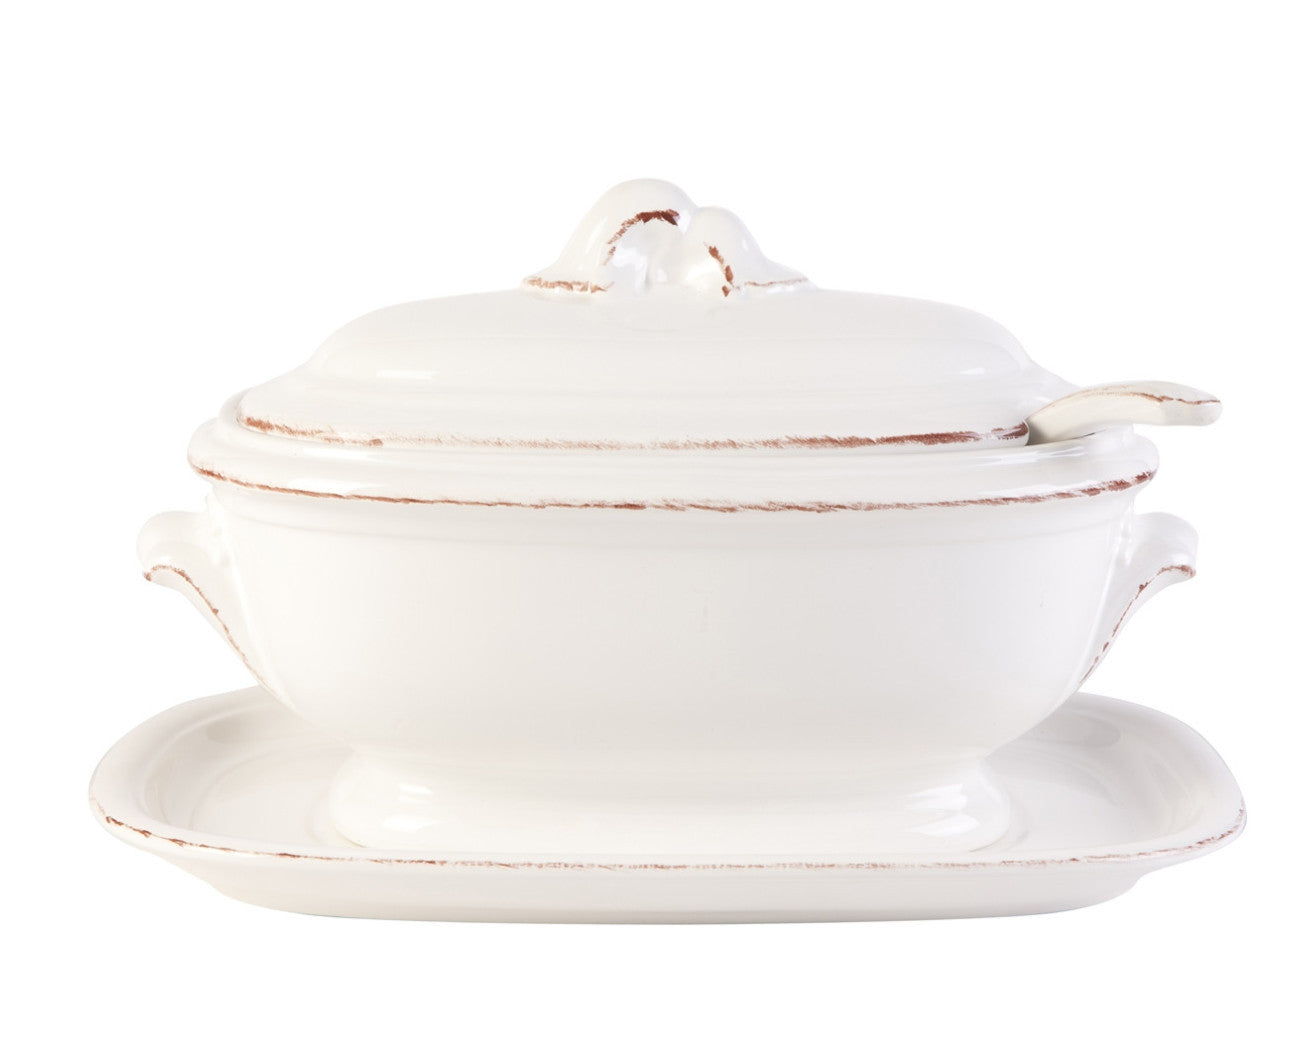 Soup Tureen Manosque Antique White